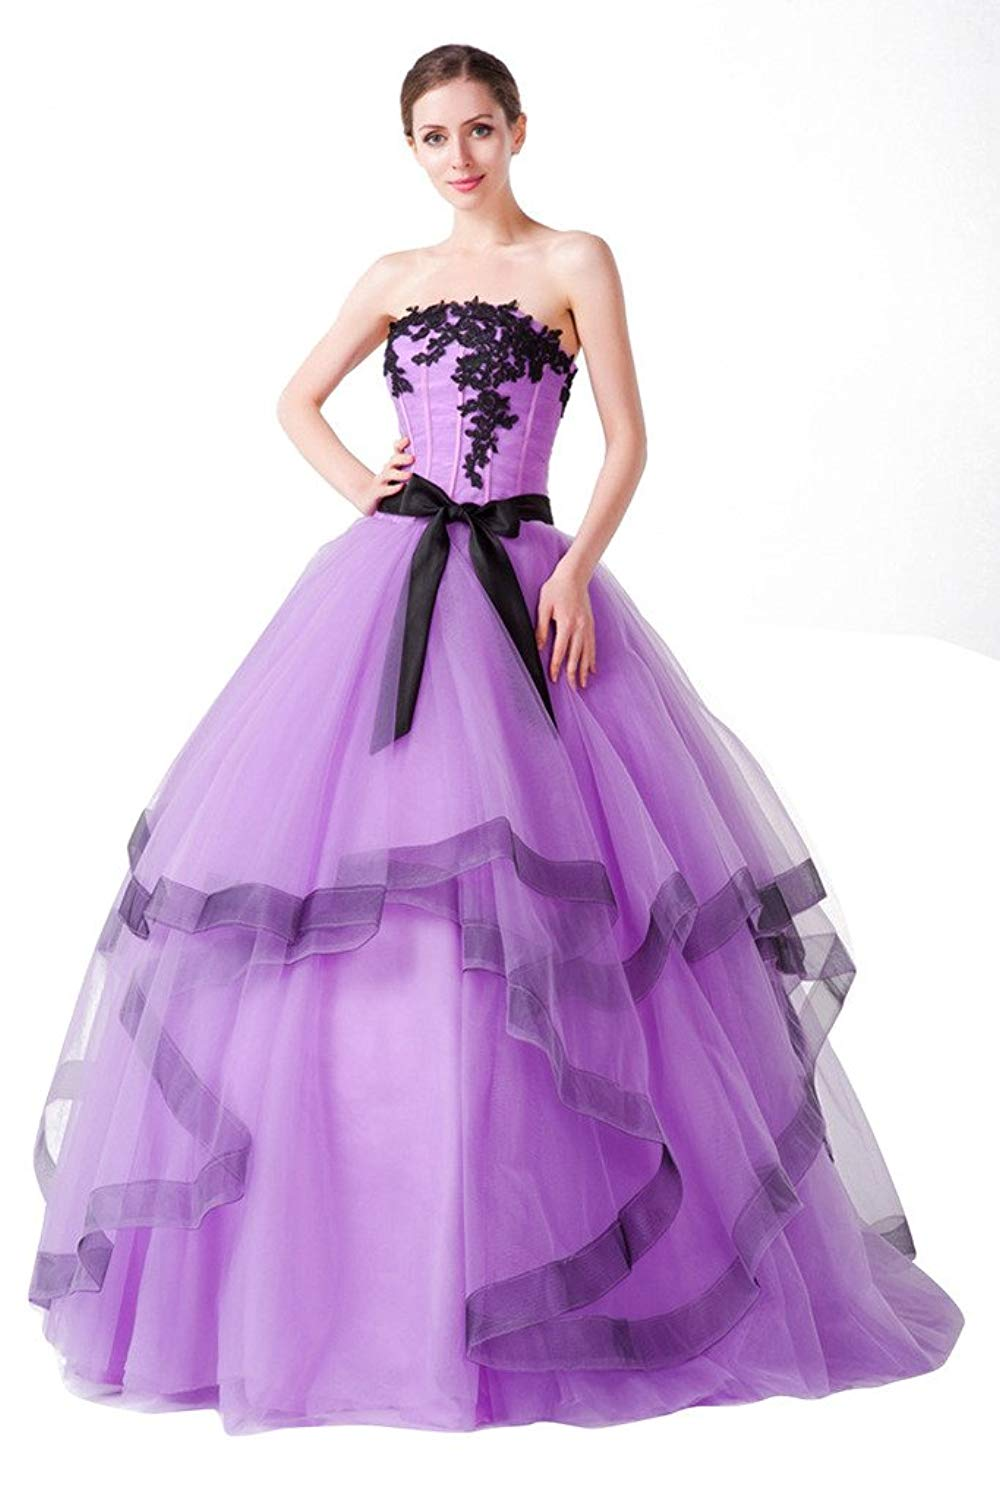 c95f18fb88b Get Quotations · Vimans Long Purple Strapless Puffy Wedding Gowns for  Bridal Reception Dress